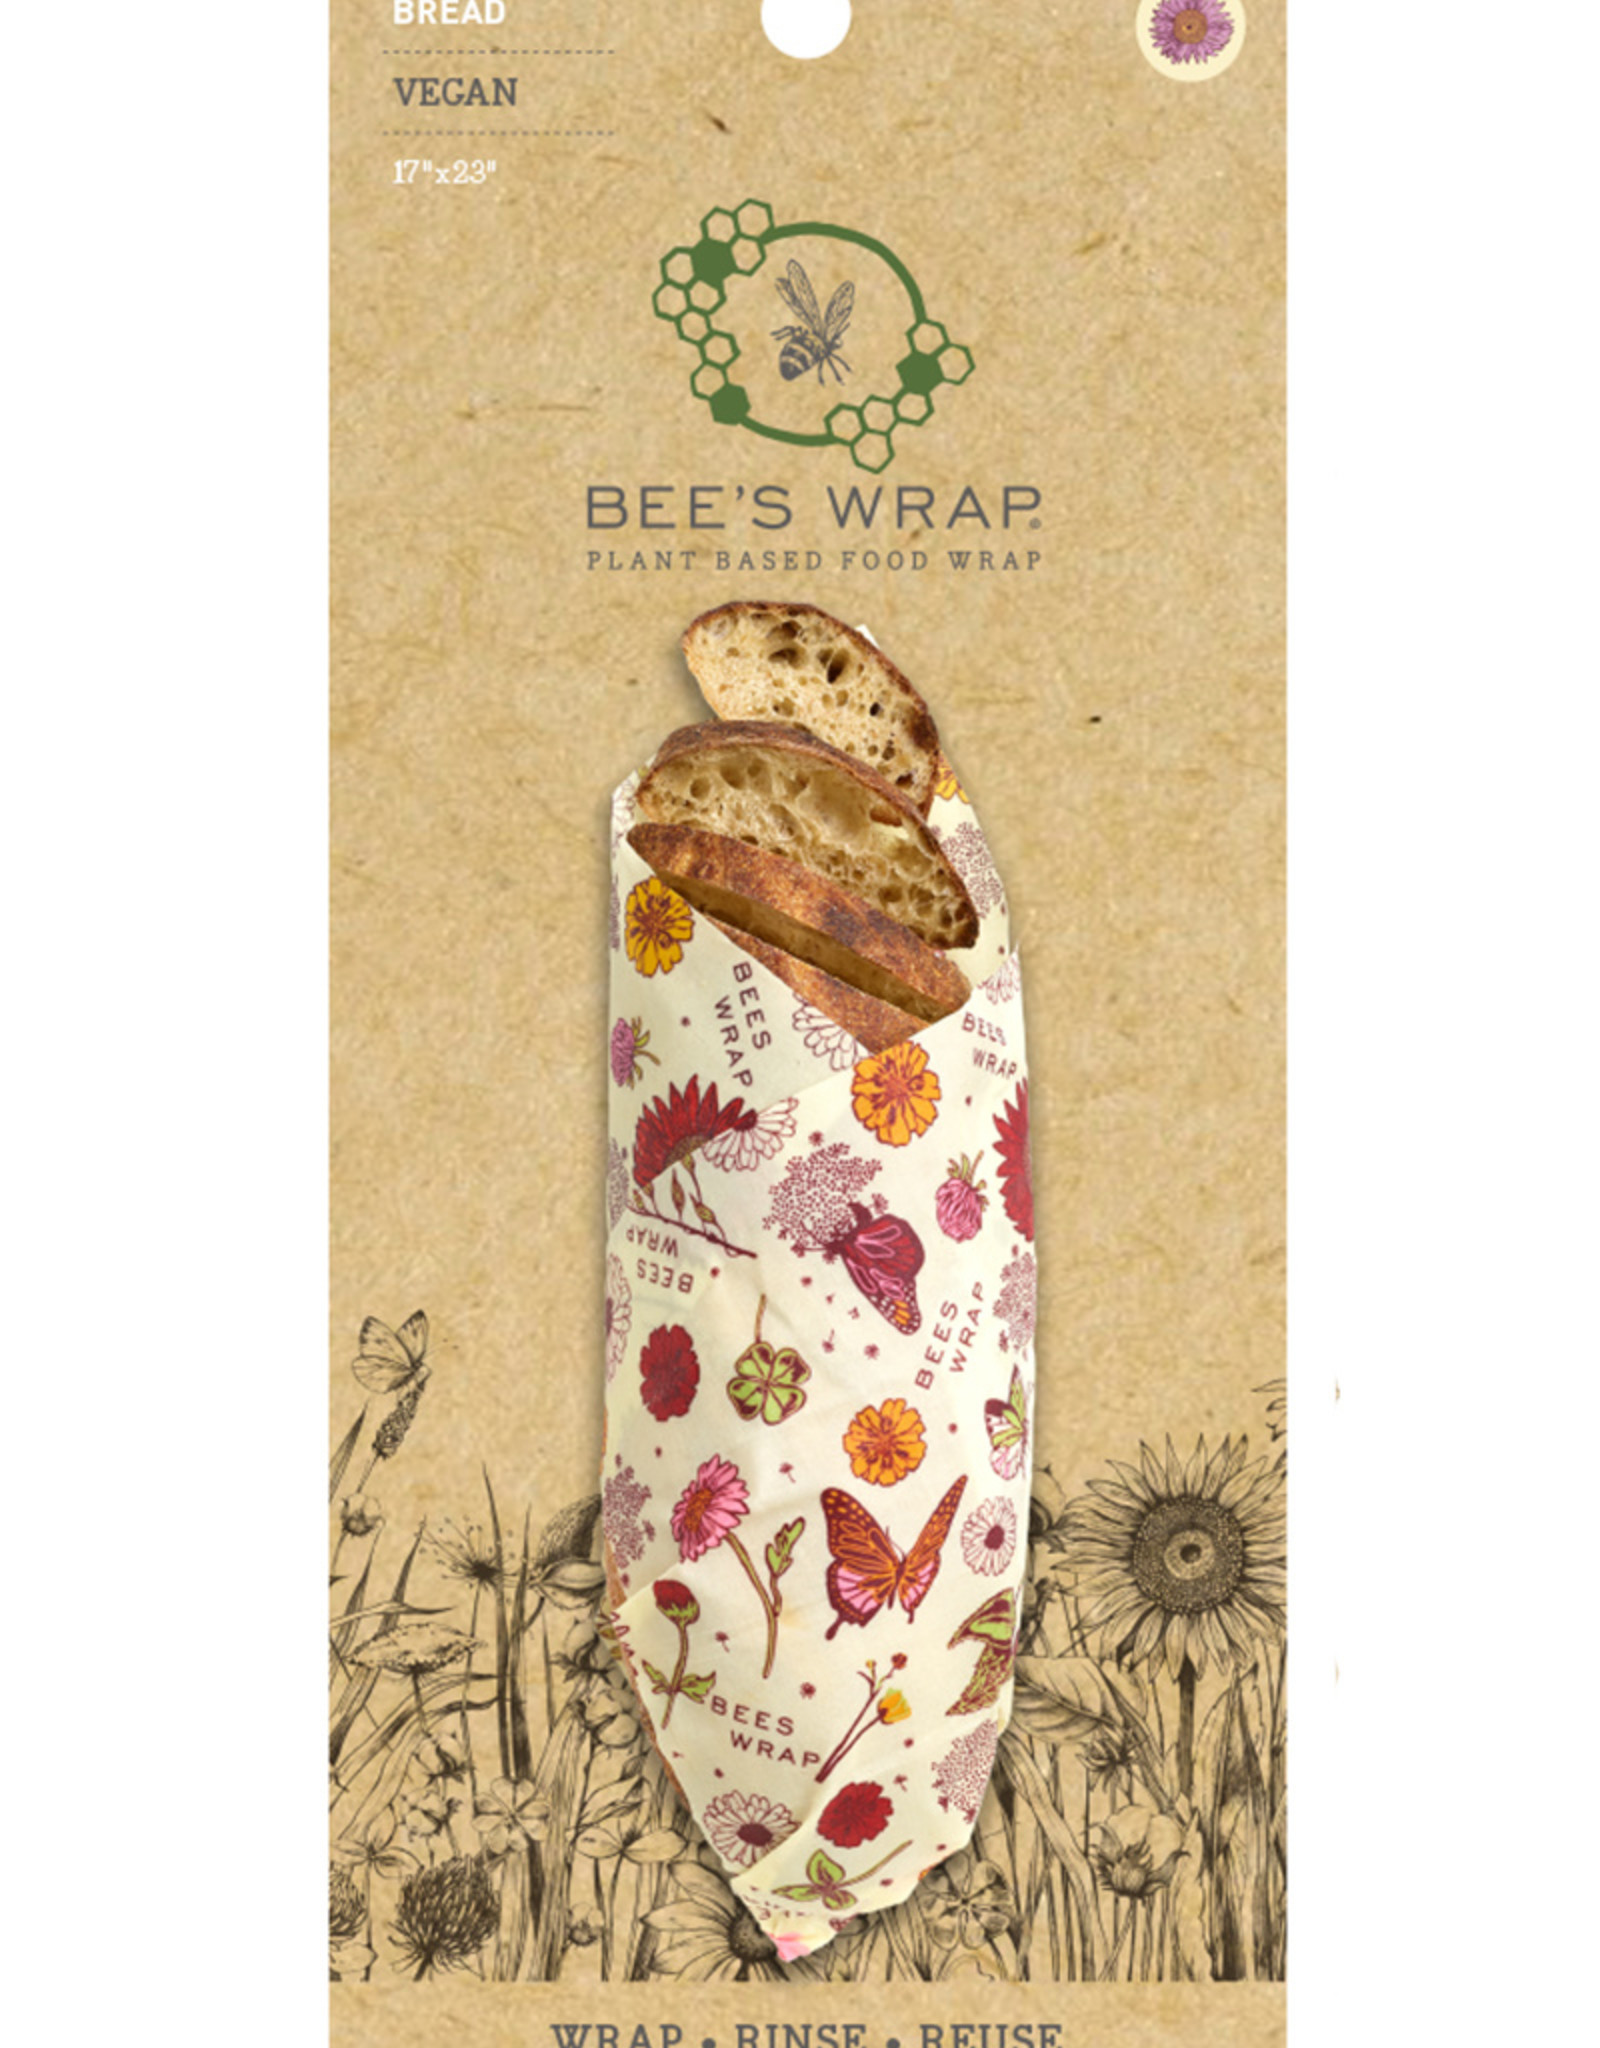 Bee's Wrap Bijenwasdoek brood(je) vegan 1 st.